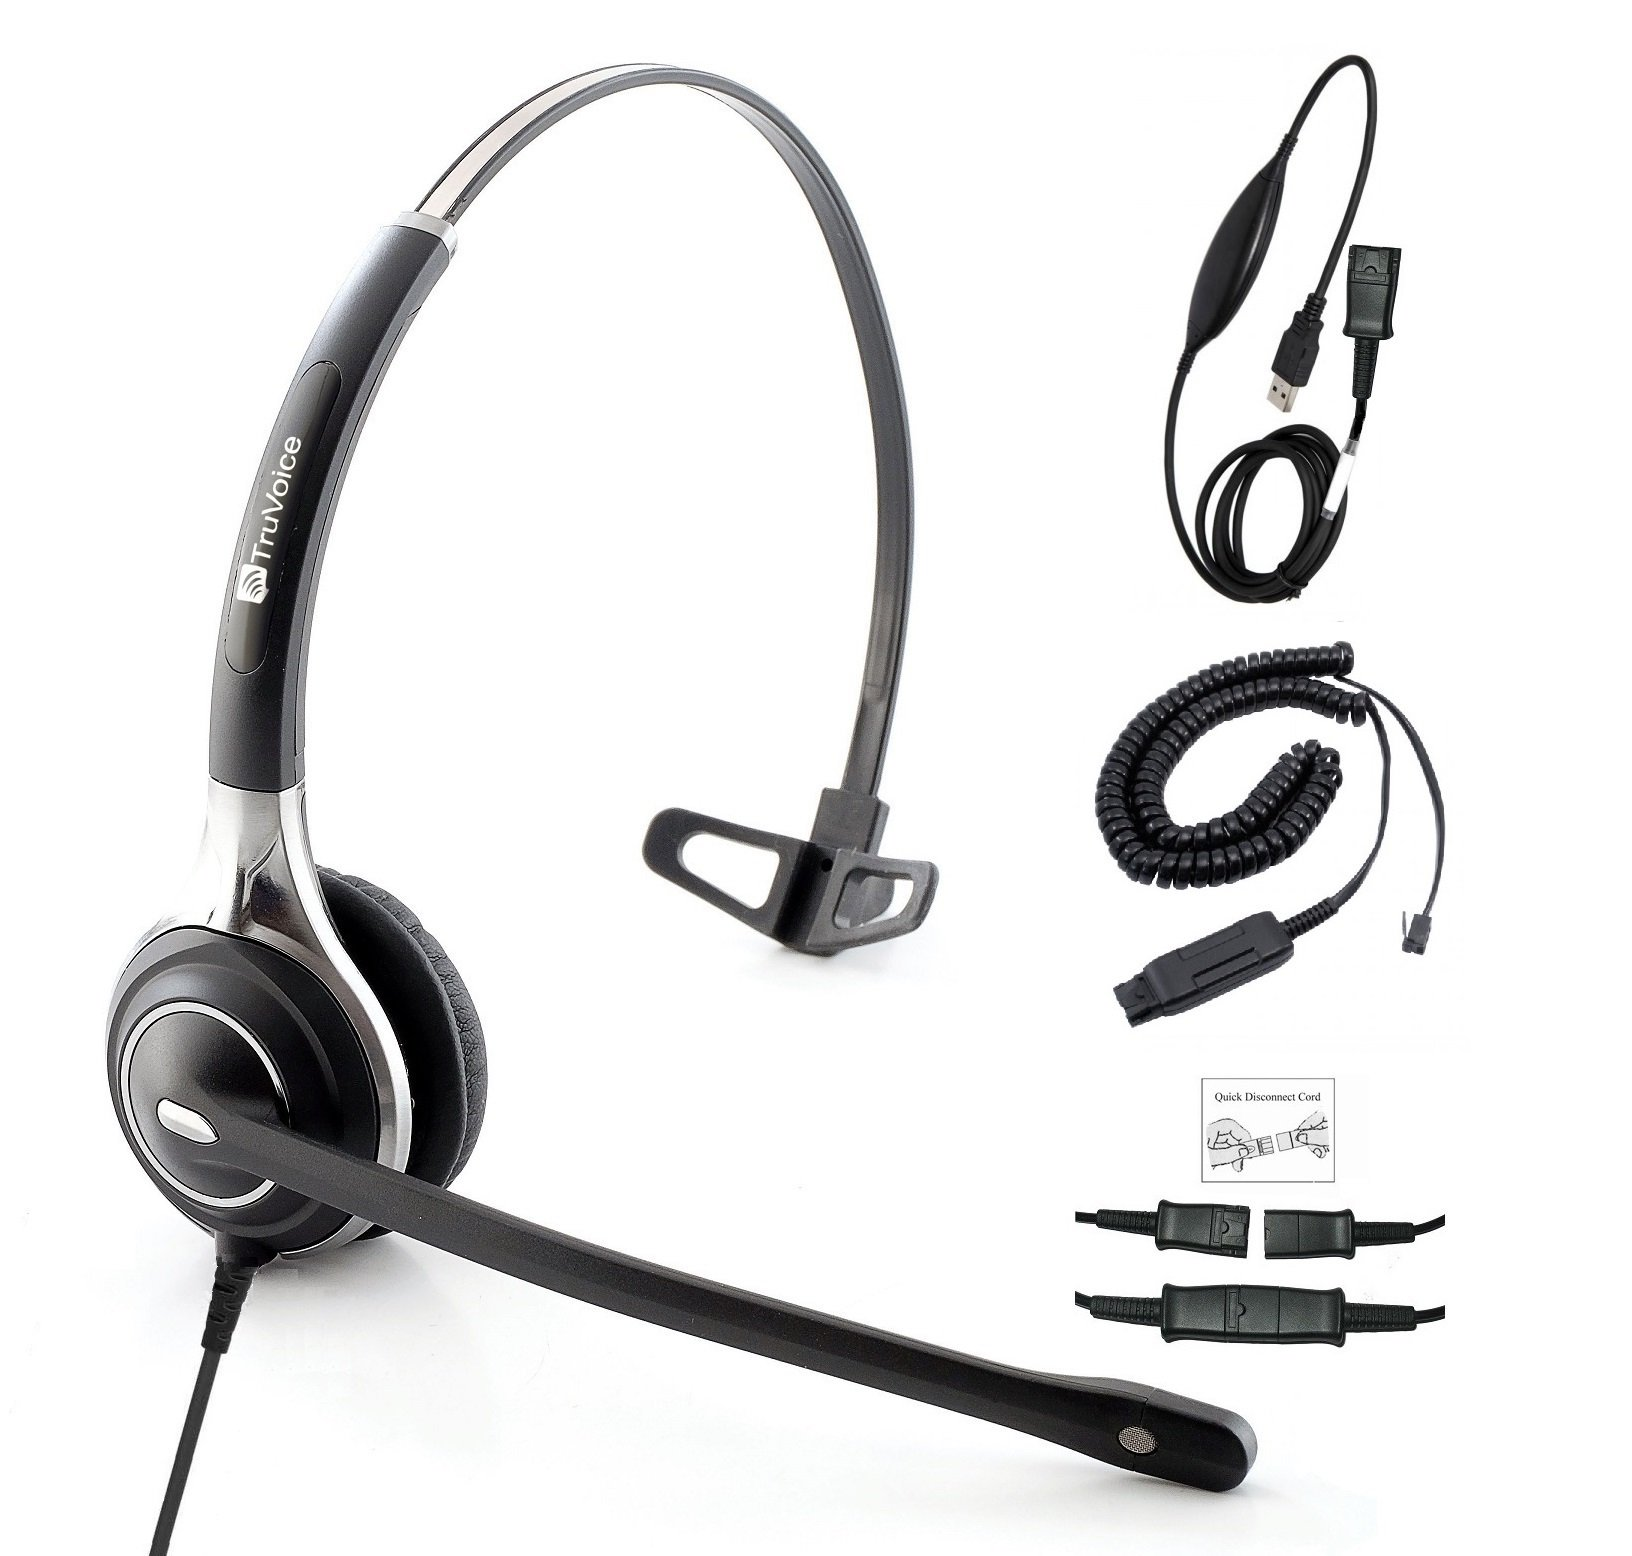 Premium Single Ear Ultra Noise Canceling Call Center Headset With USB and QD Cable For Avaya IP 1608, 1616, 9601, 9608, 9611, 9611G, 9620, 9620C, 9620L, 9621, 9630, 9640 and also with PC or Softphone